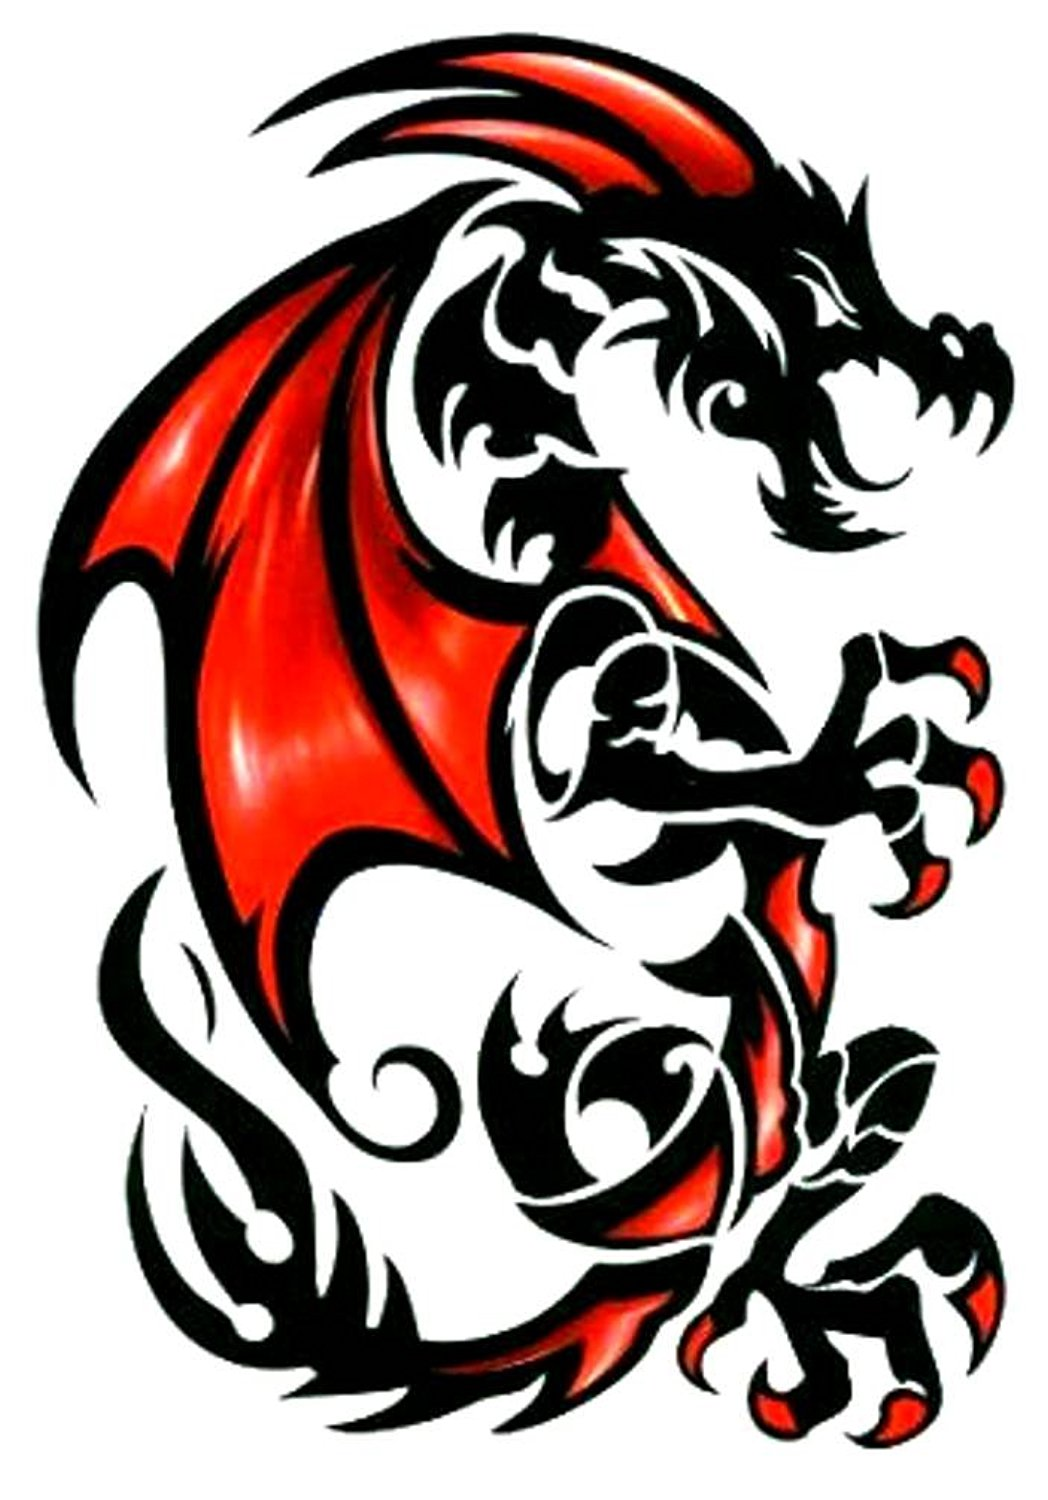 Buy Tribal Red Black Draco Dragon Temporary Body Art Tattoos Large